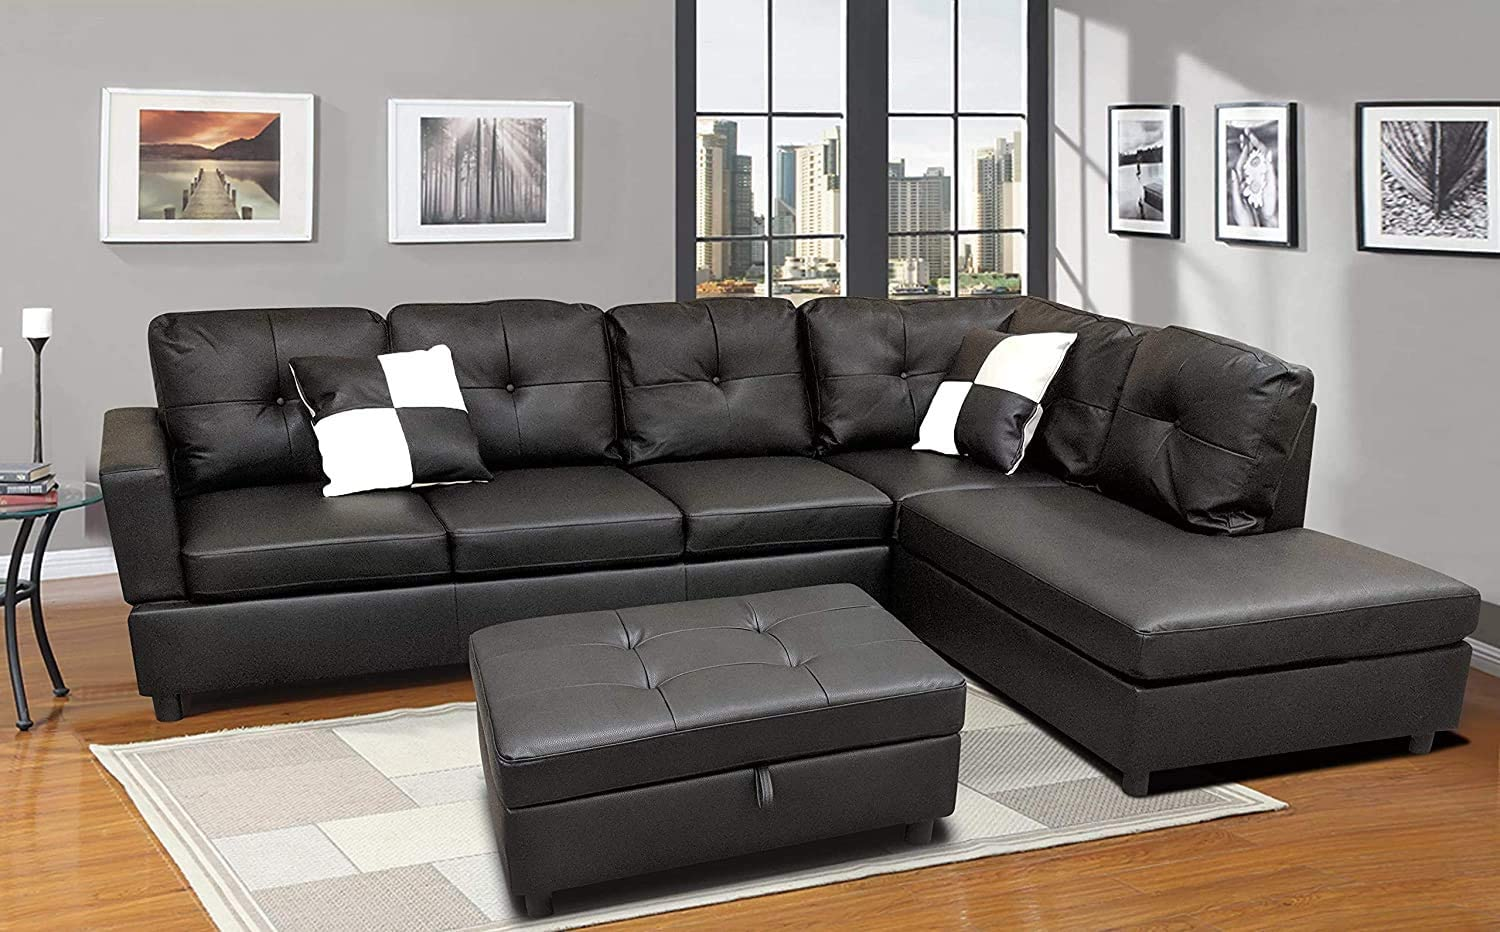 Sofa Sectional Sofa, L Shape Faux Leather Sectional Sofa Couch Set with  Chaise, Ottoman, 20 Toss Pillow Using for Living Room Furniture.(Black)